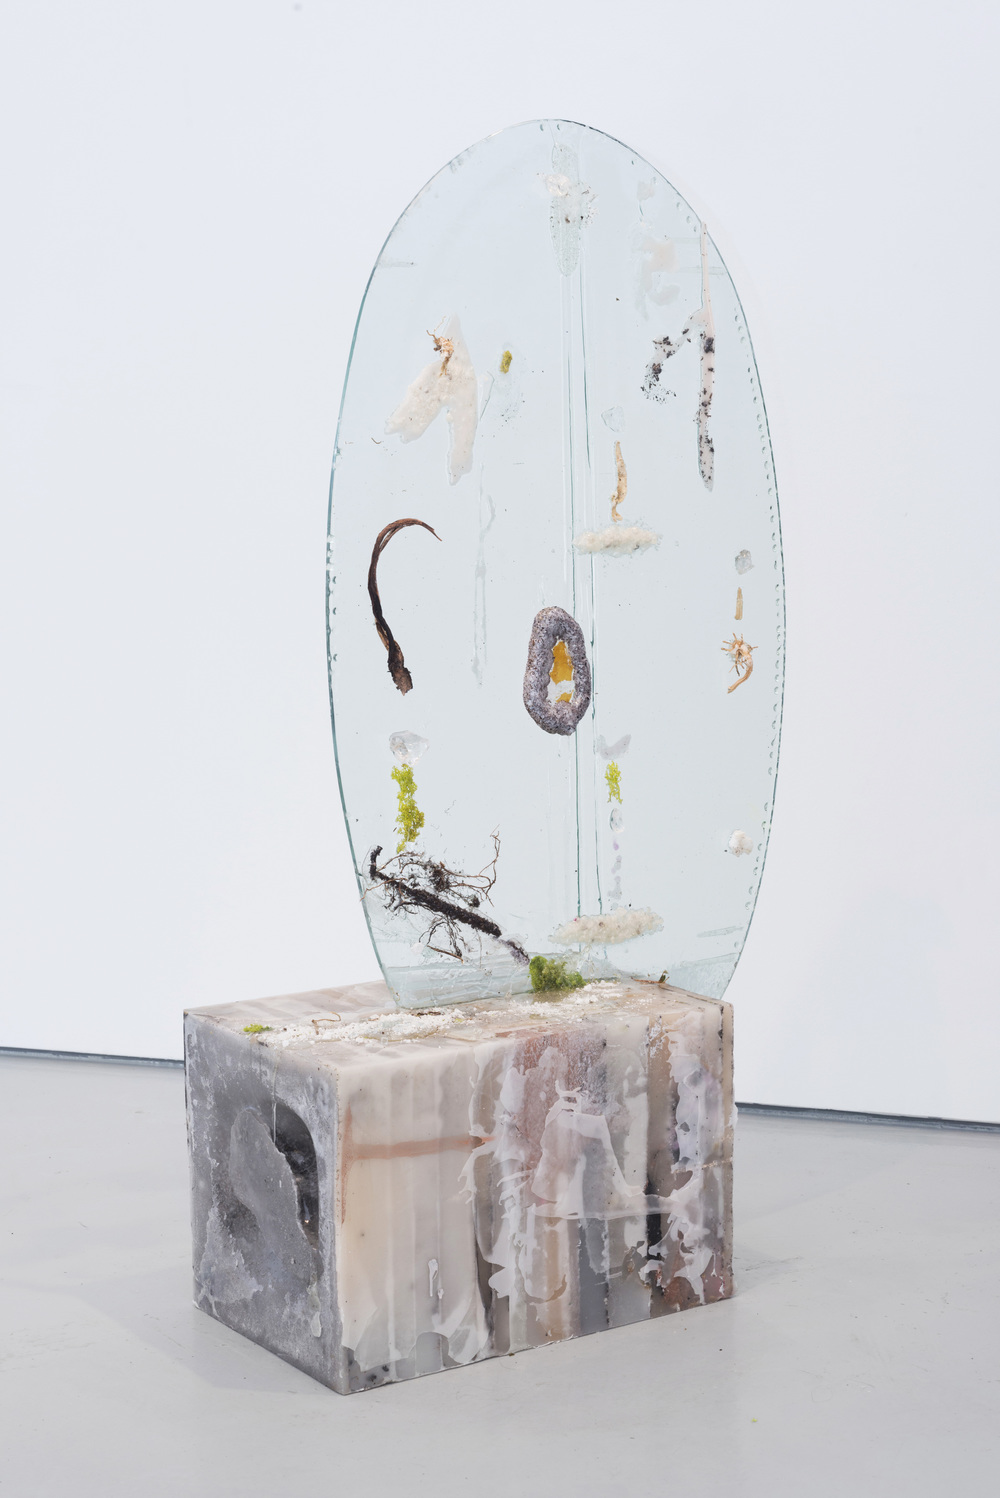 Ellipse with Nitrogen Fixers and Snake Plant Buds, 2013-2014. Glass, wax, resin, plant materials, rock salt, 49 x 26 x 12 3/4 inches